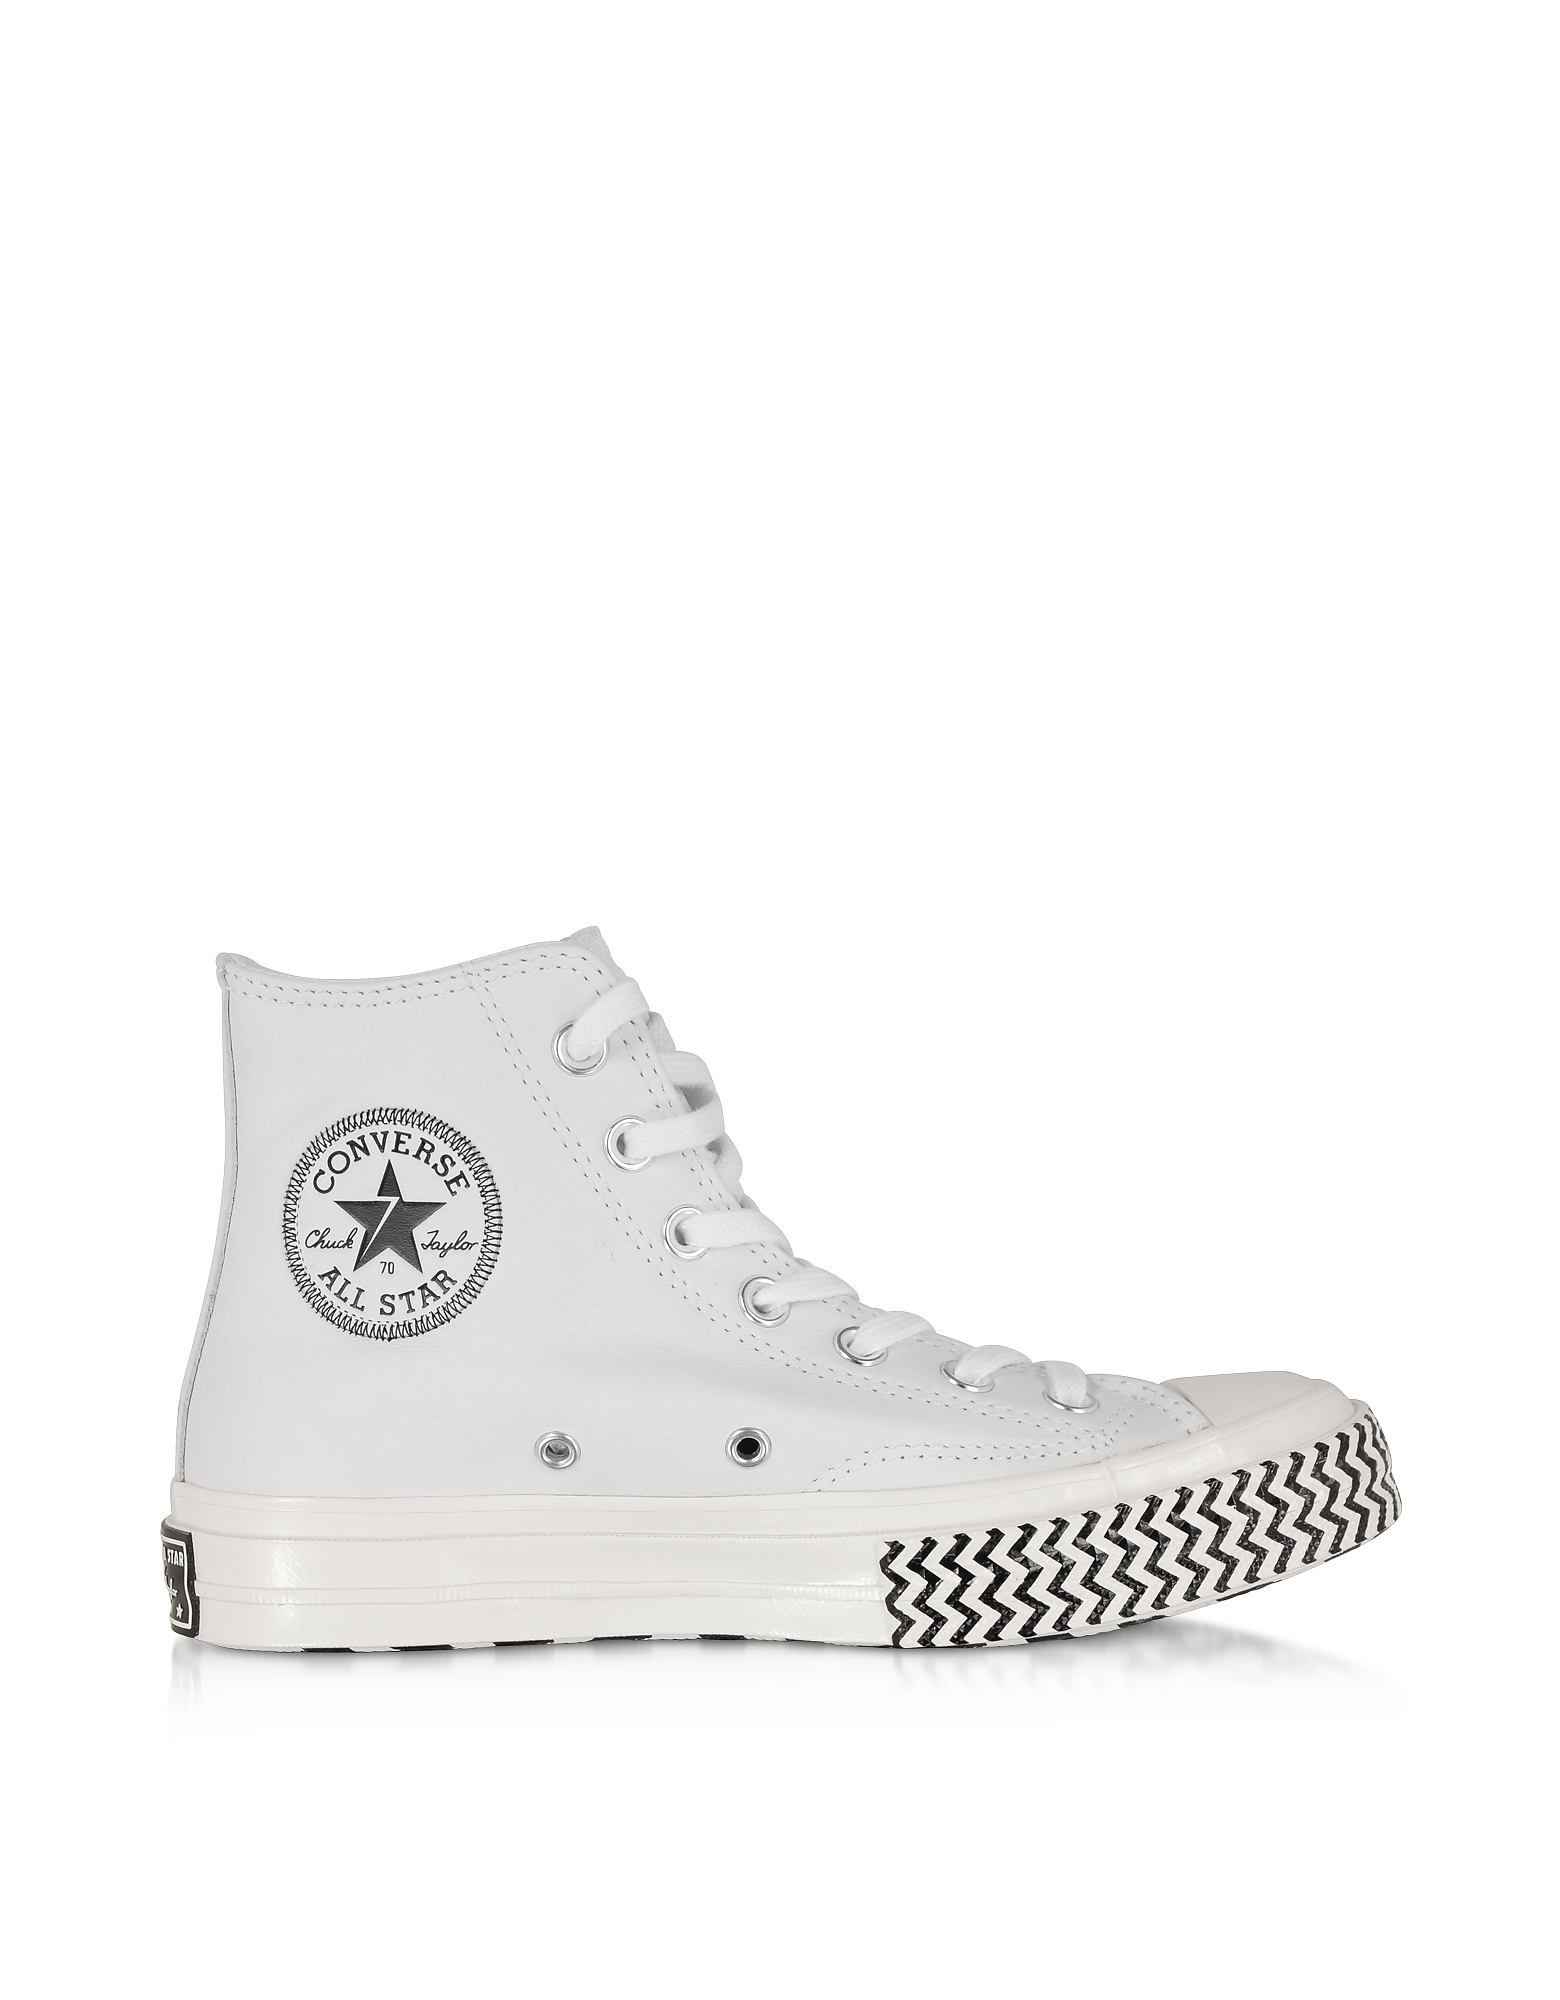 Converse Limited Edition Designer Shoes, White Chuck 70 Mission-V High Top